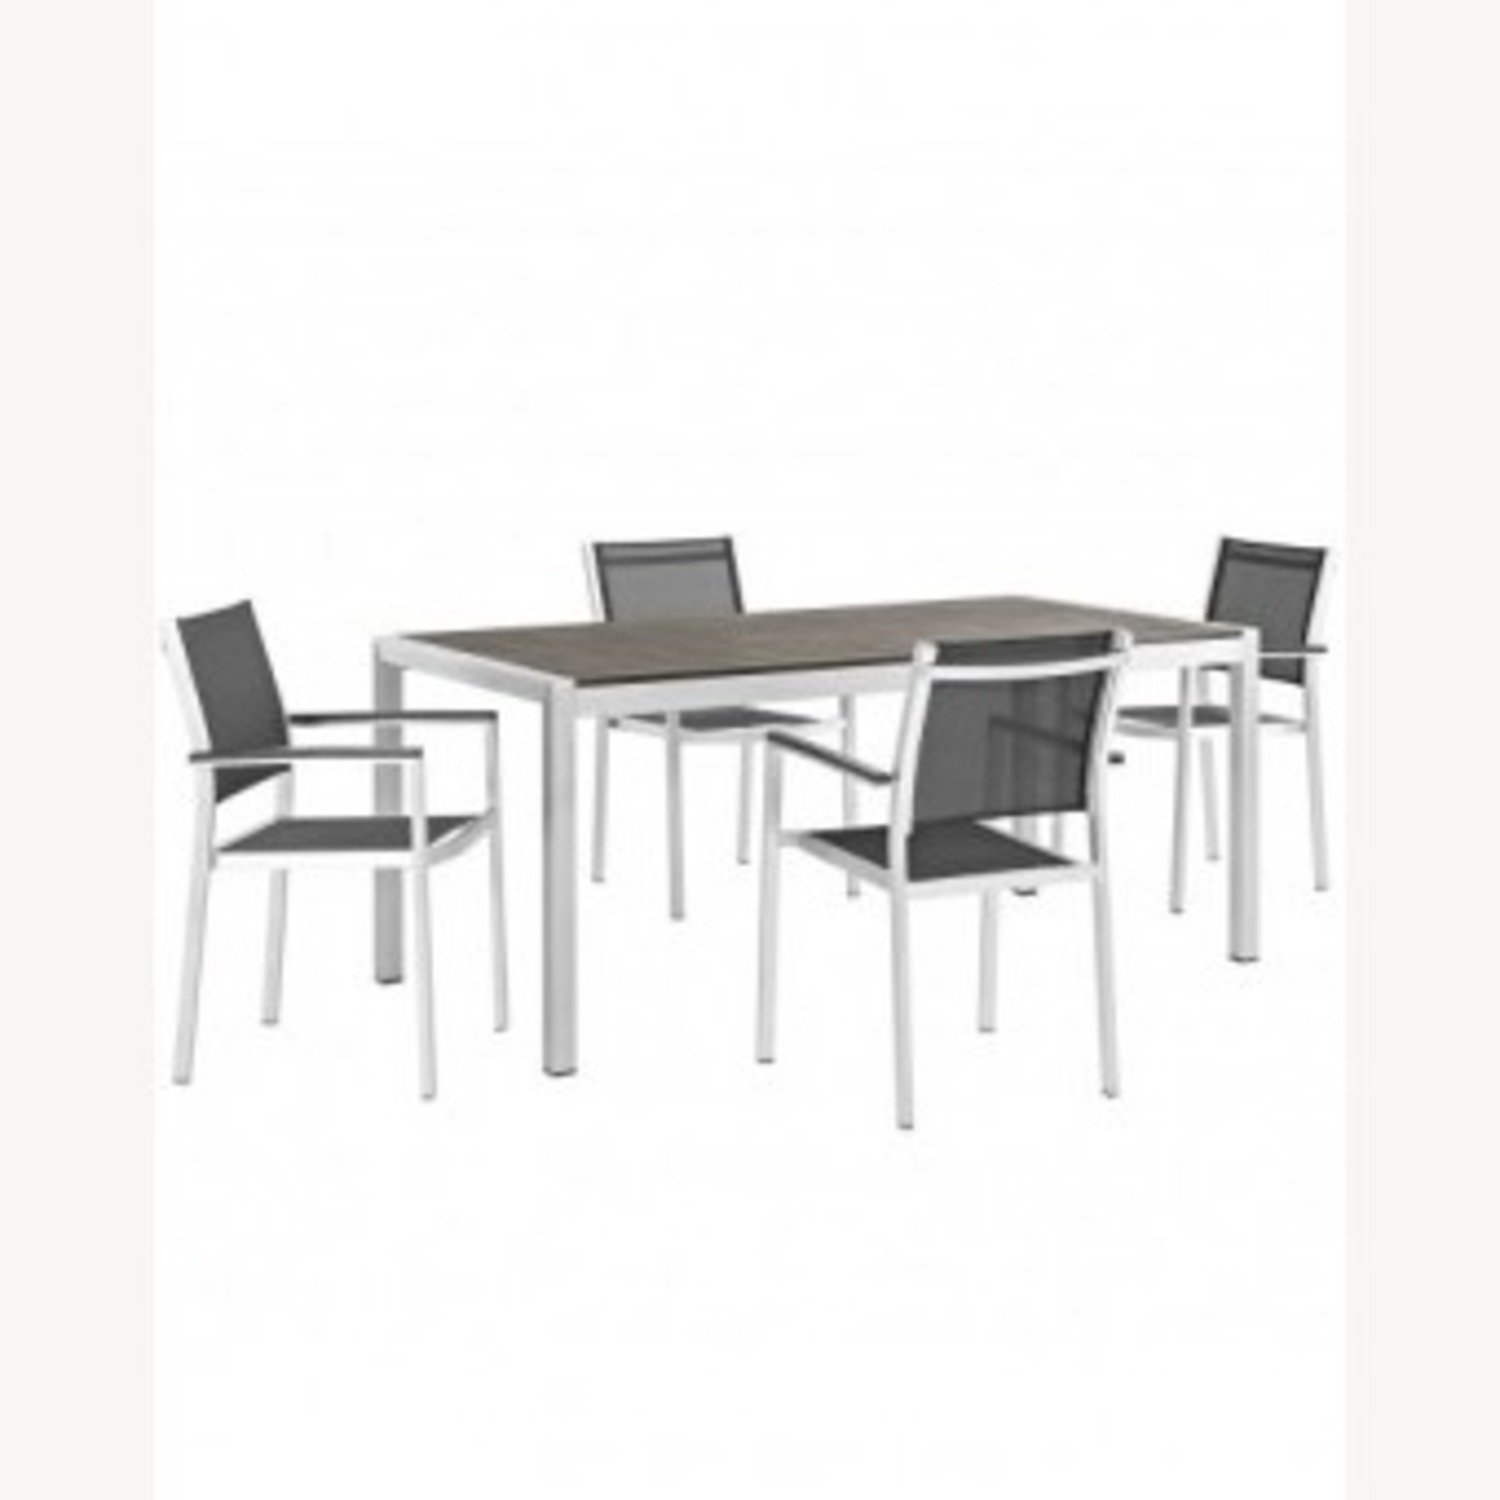 5-Piece Dining Set In Black Plastic Wood Accent - image-0